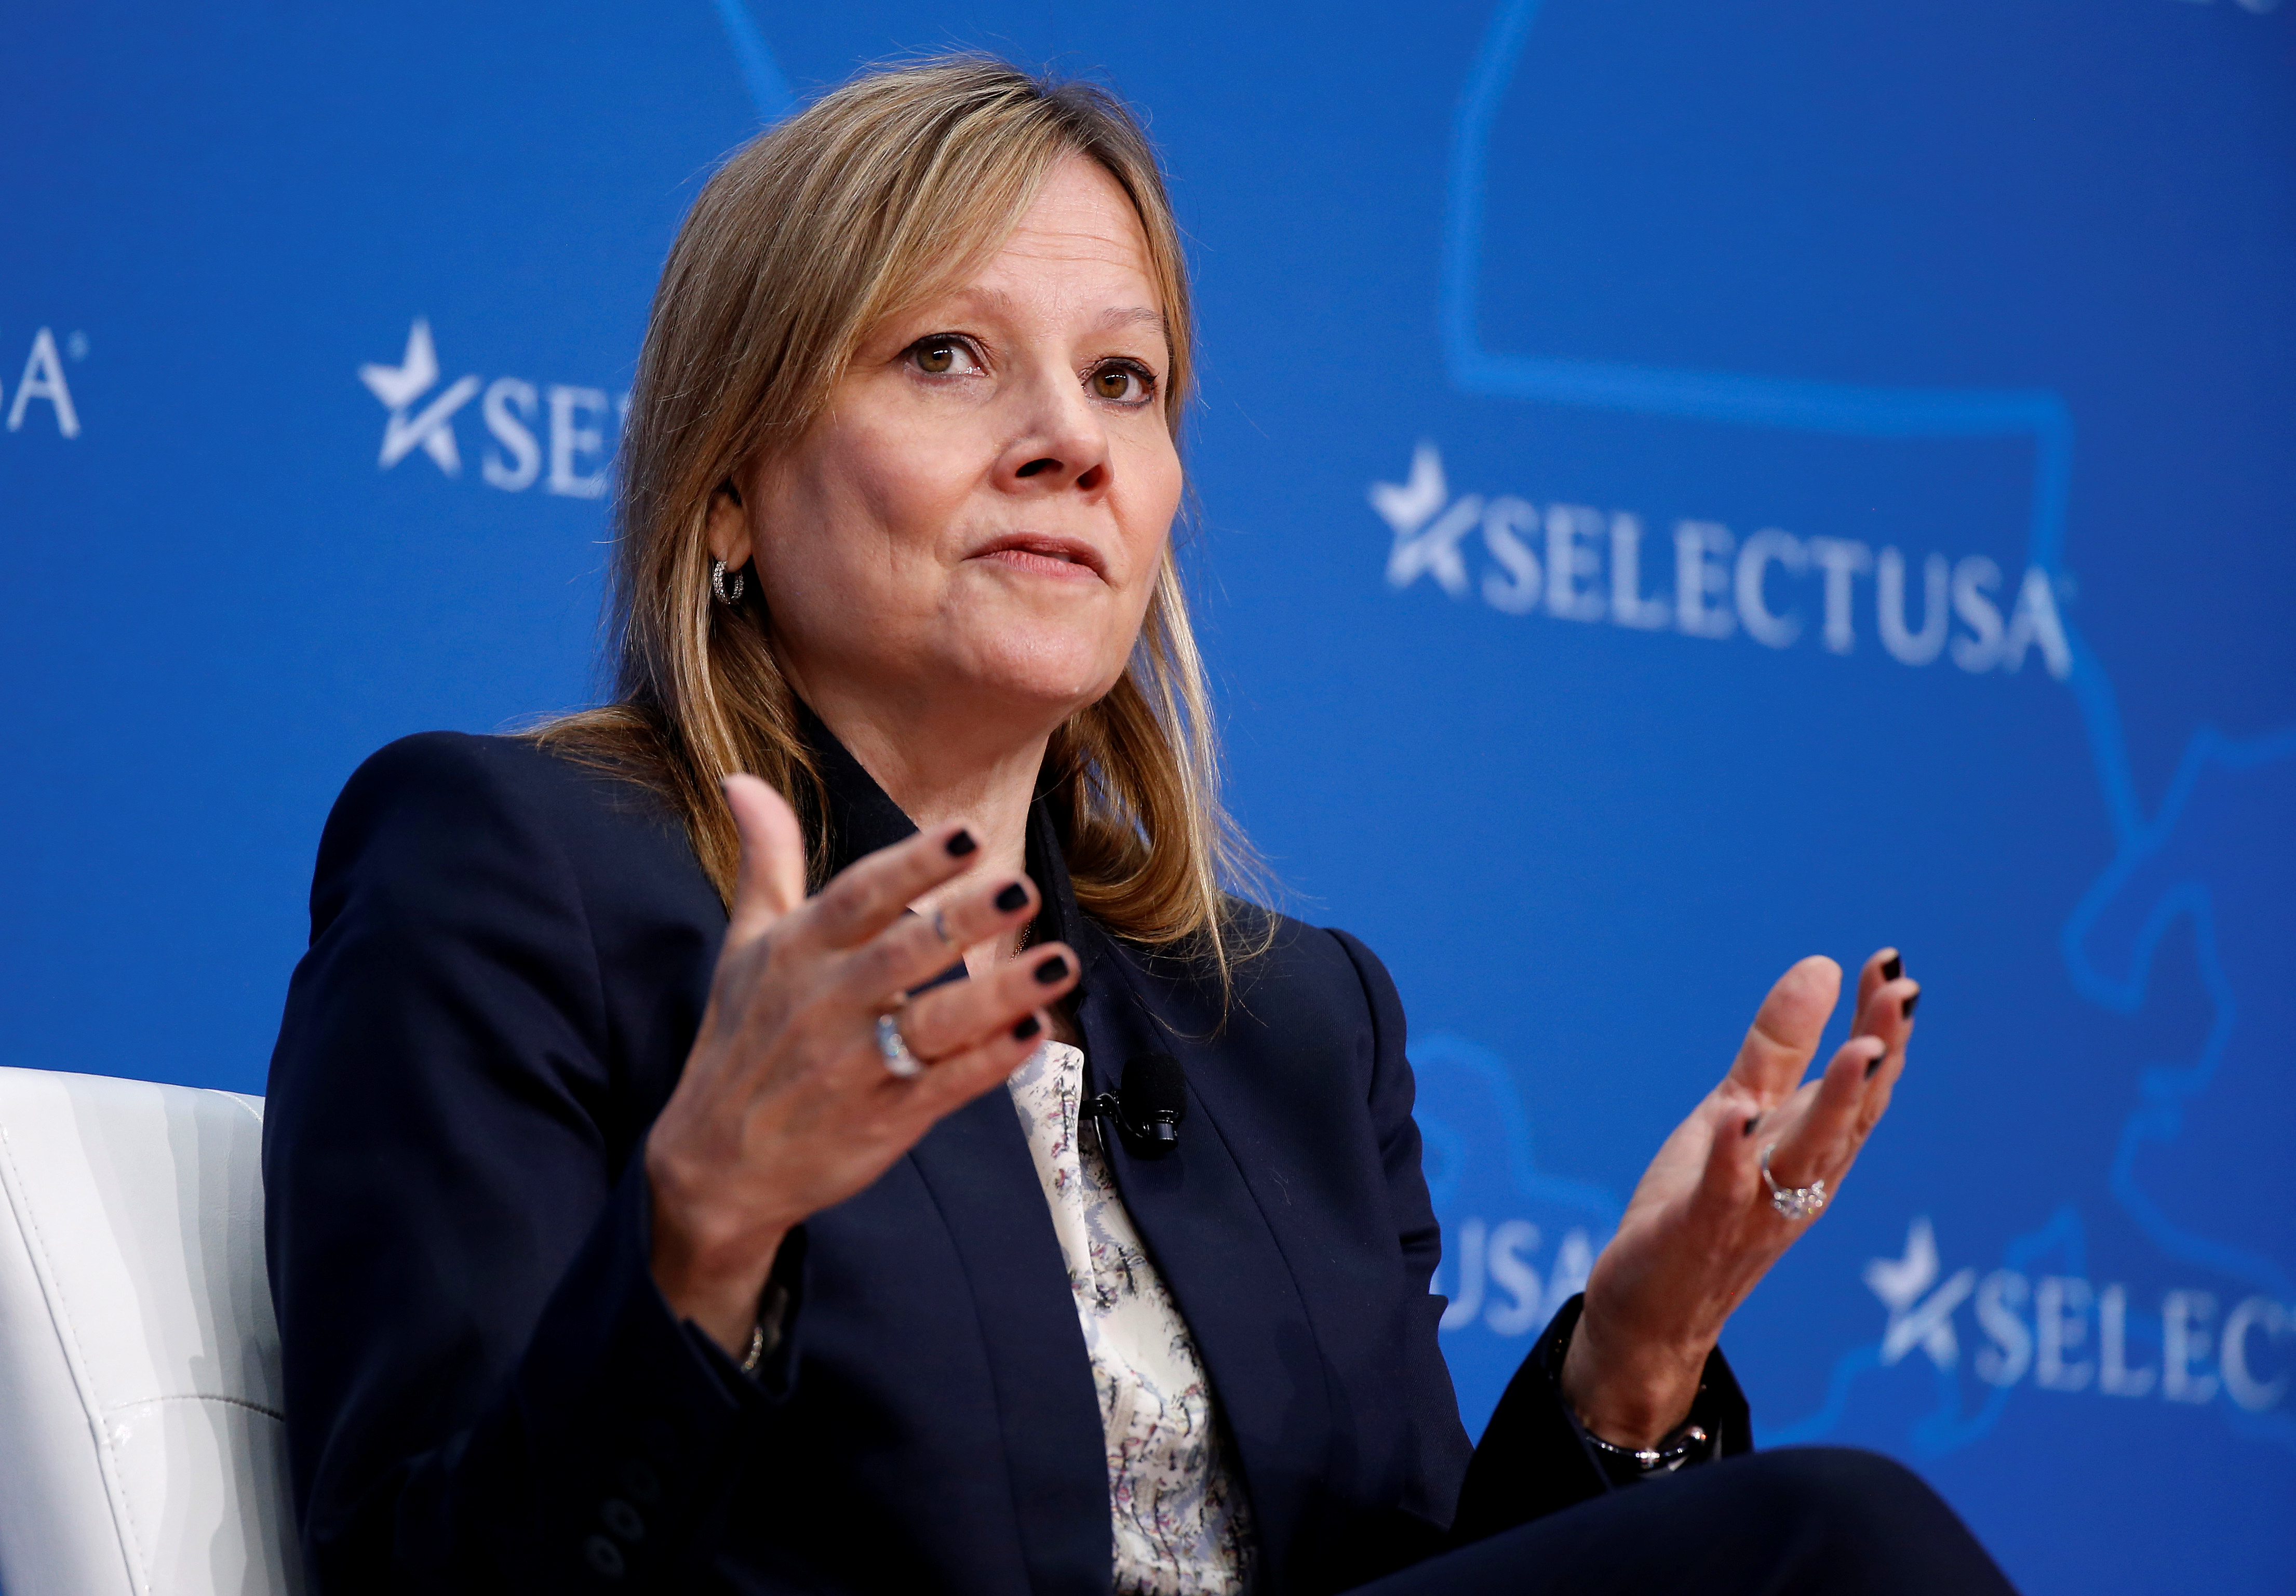 Mary Barra, CEO of General Motors, speaks at the 2017 SelectUSA Investment Summit in Oxon Hill, Maryland, June 19, 2017.